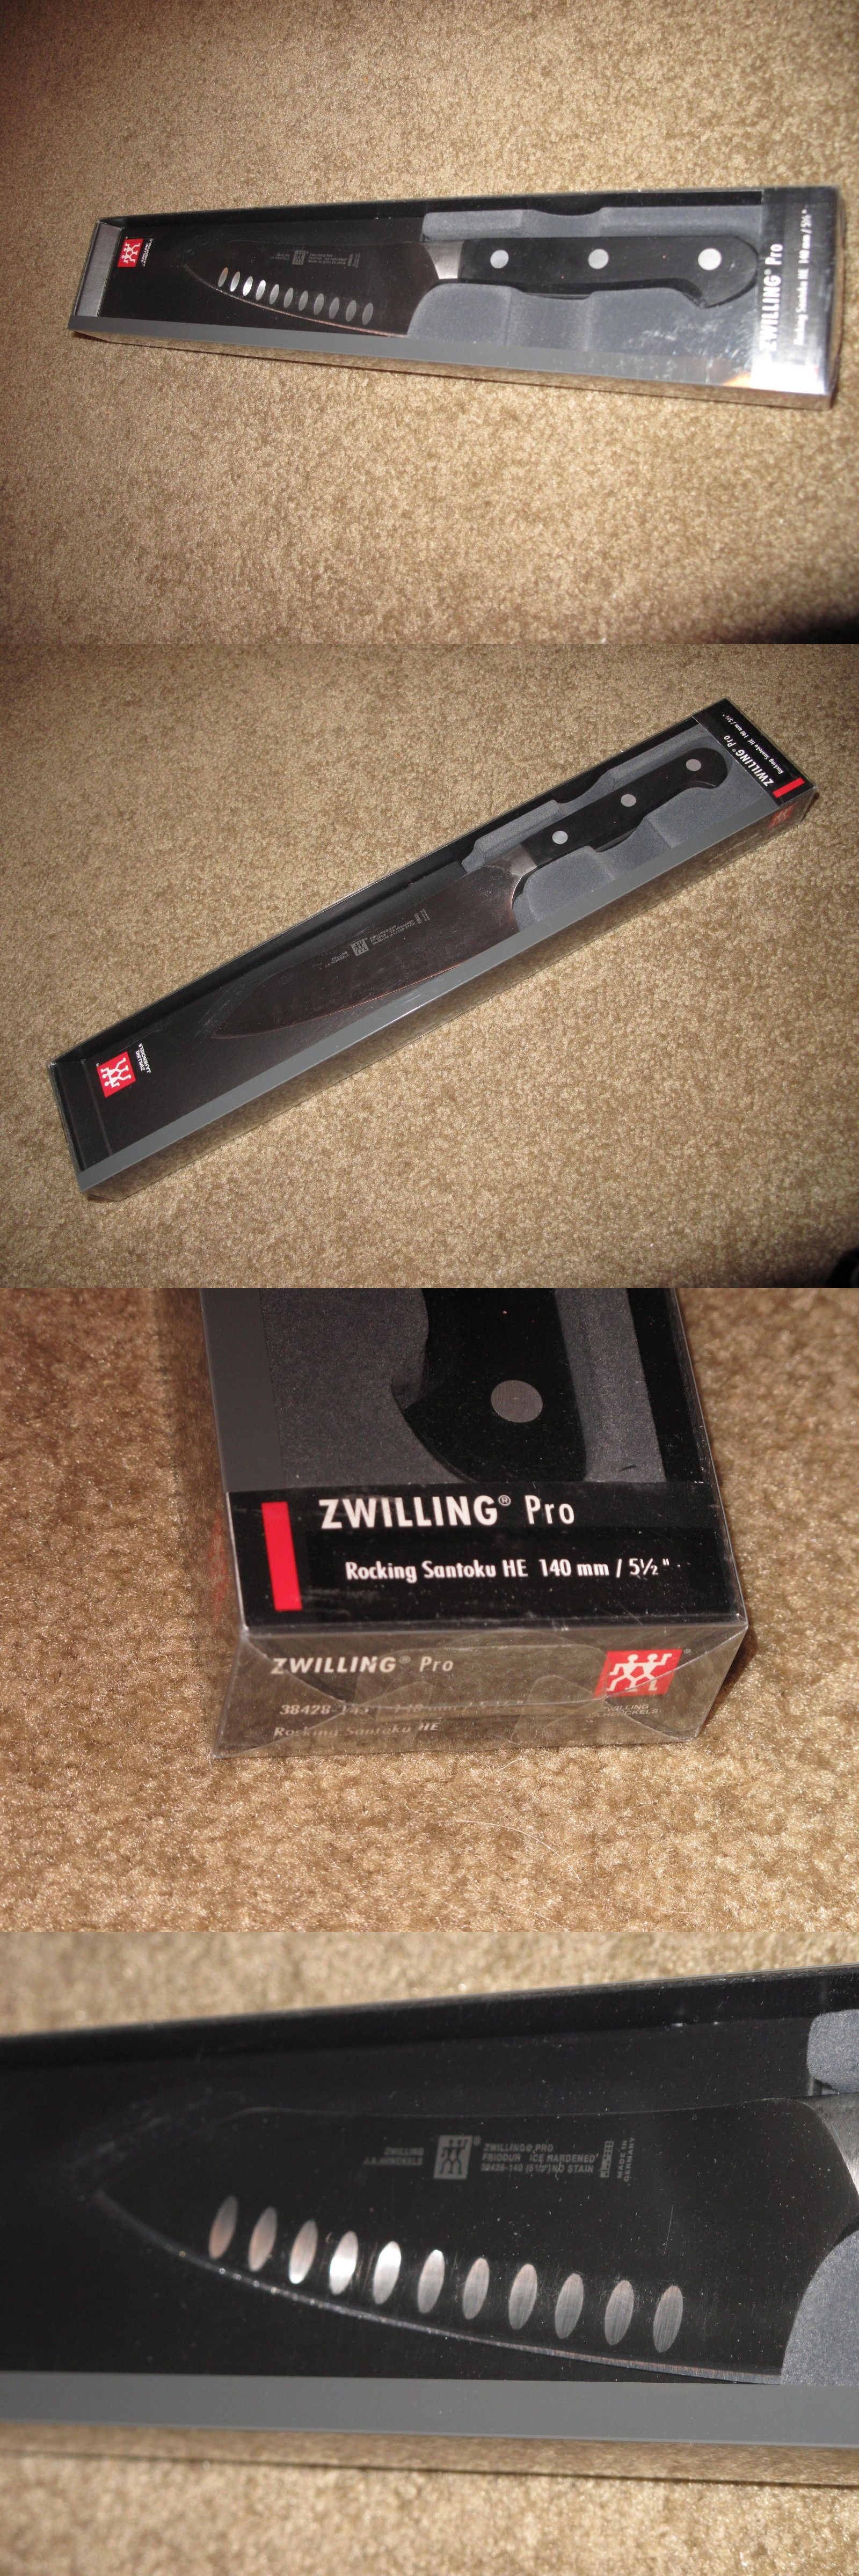 Kitchen and Steak Knives Zwilling JA Henckels Pro